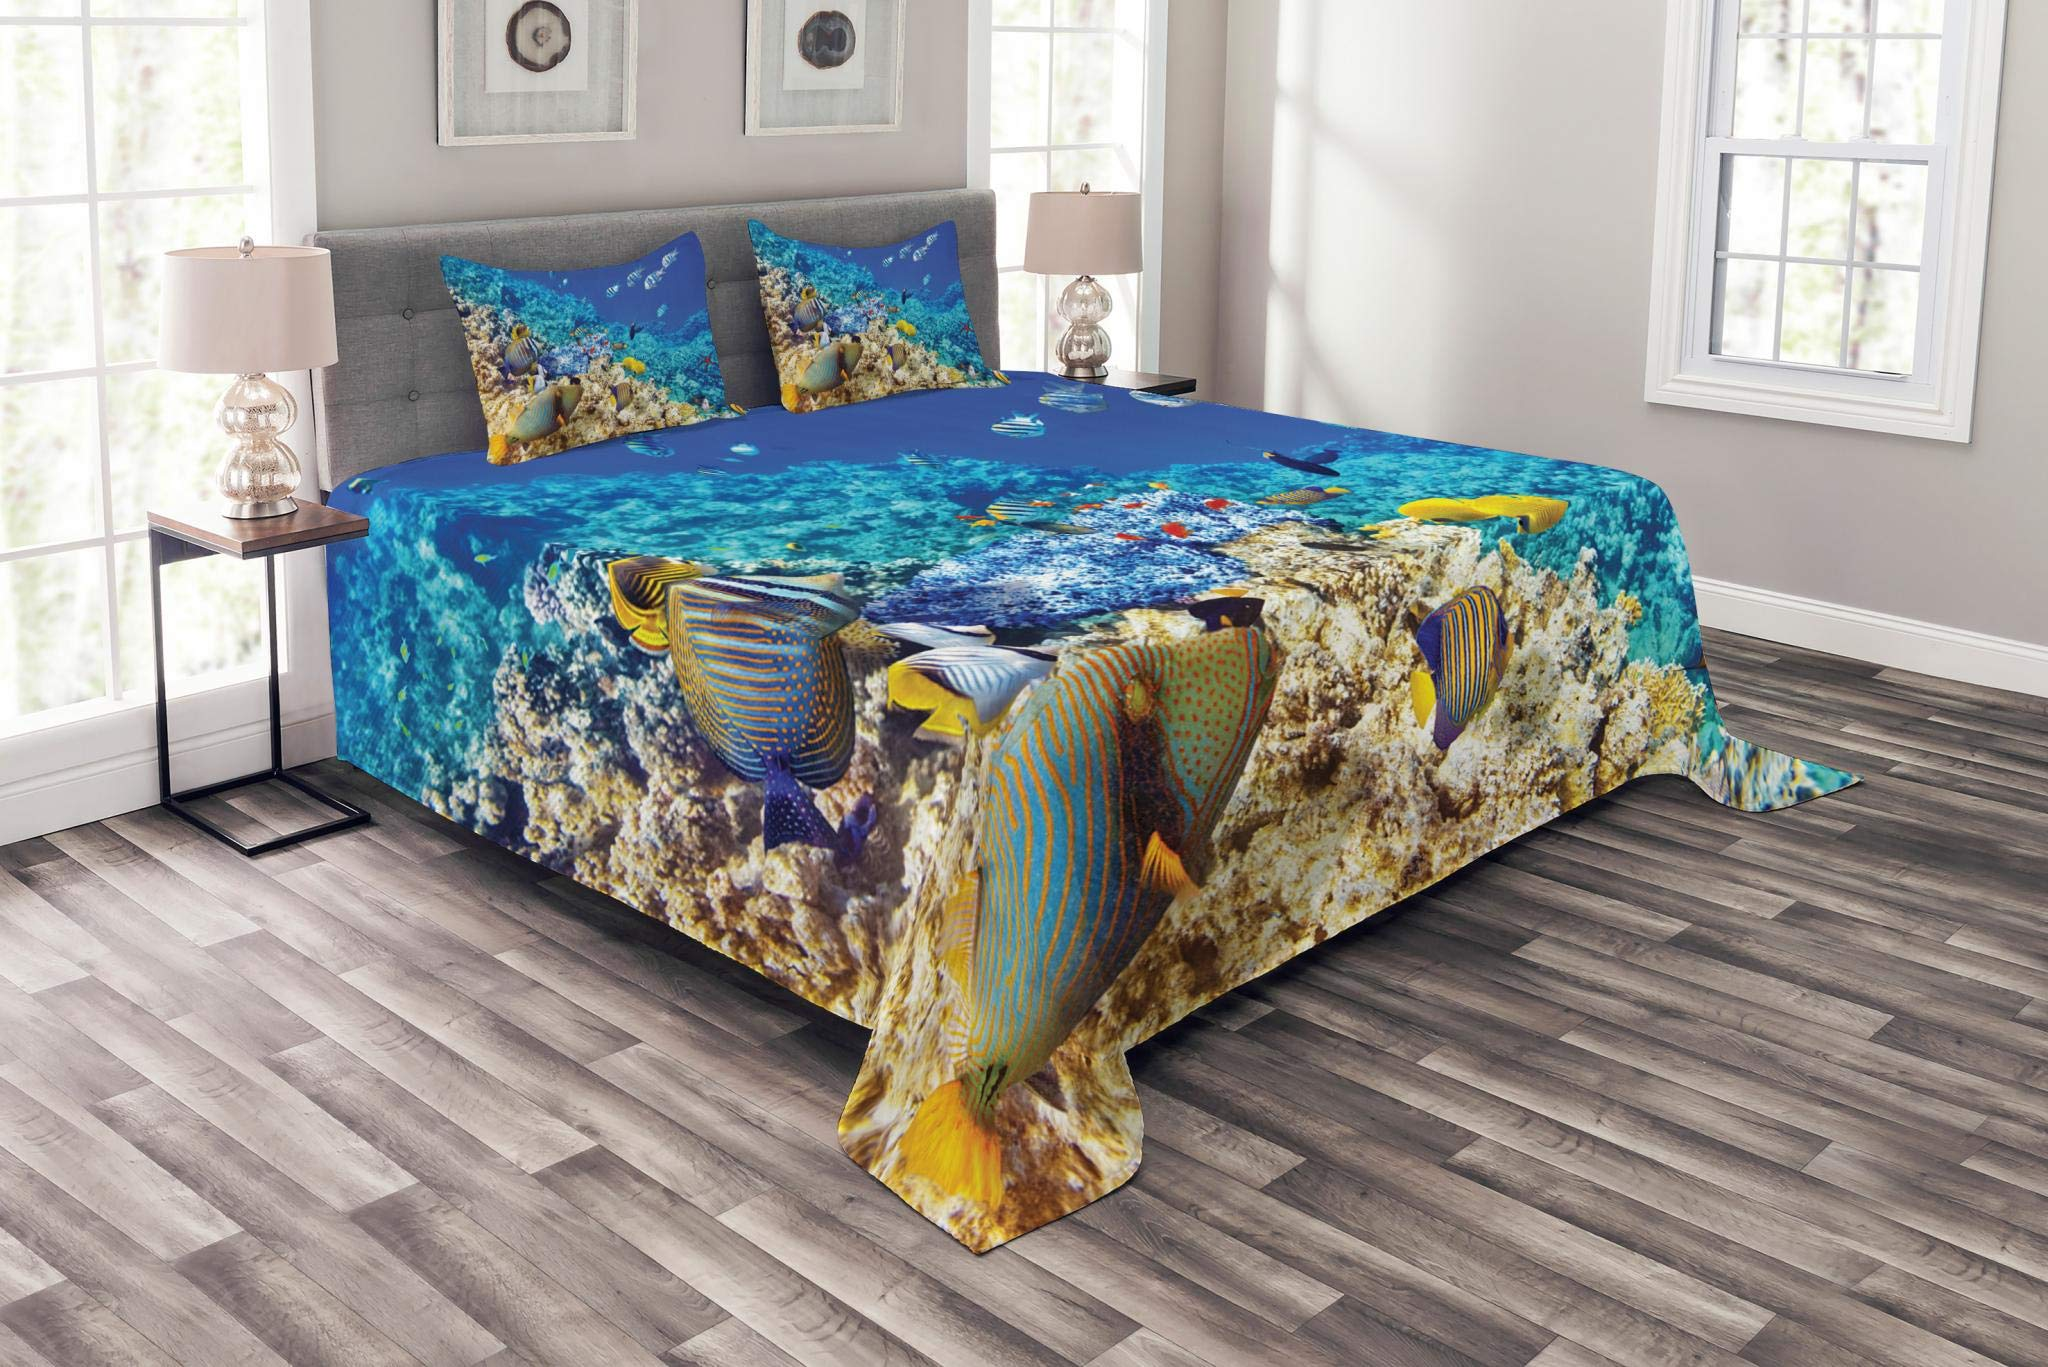 Lunarable Ocean Bedspread Set Queen Size, Clear Sea Animal World Corals Tropical Fishes and Starfish Egyptian Sea Image, Decorative Quilted 3 Piece Coverlet Set with 2 Pillow Shams, Aqua Blue and Tan